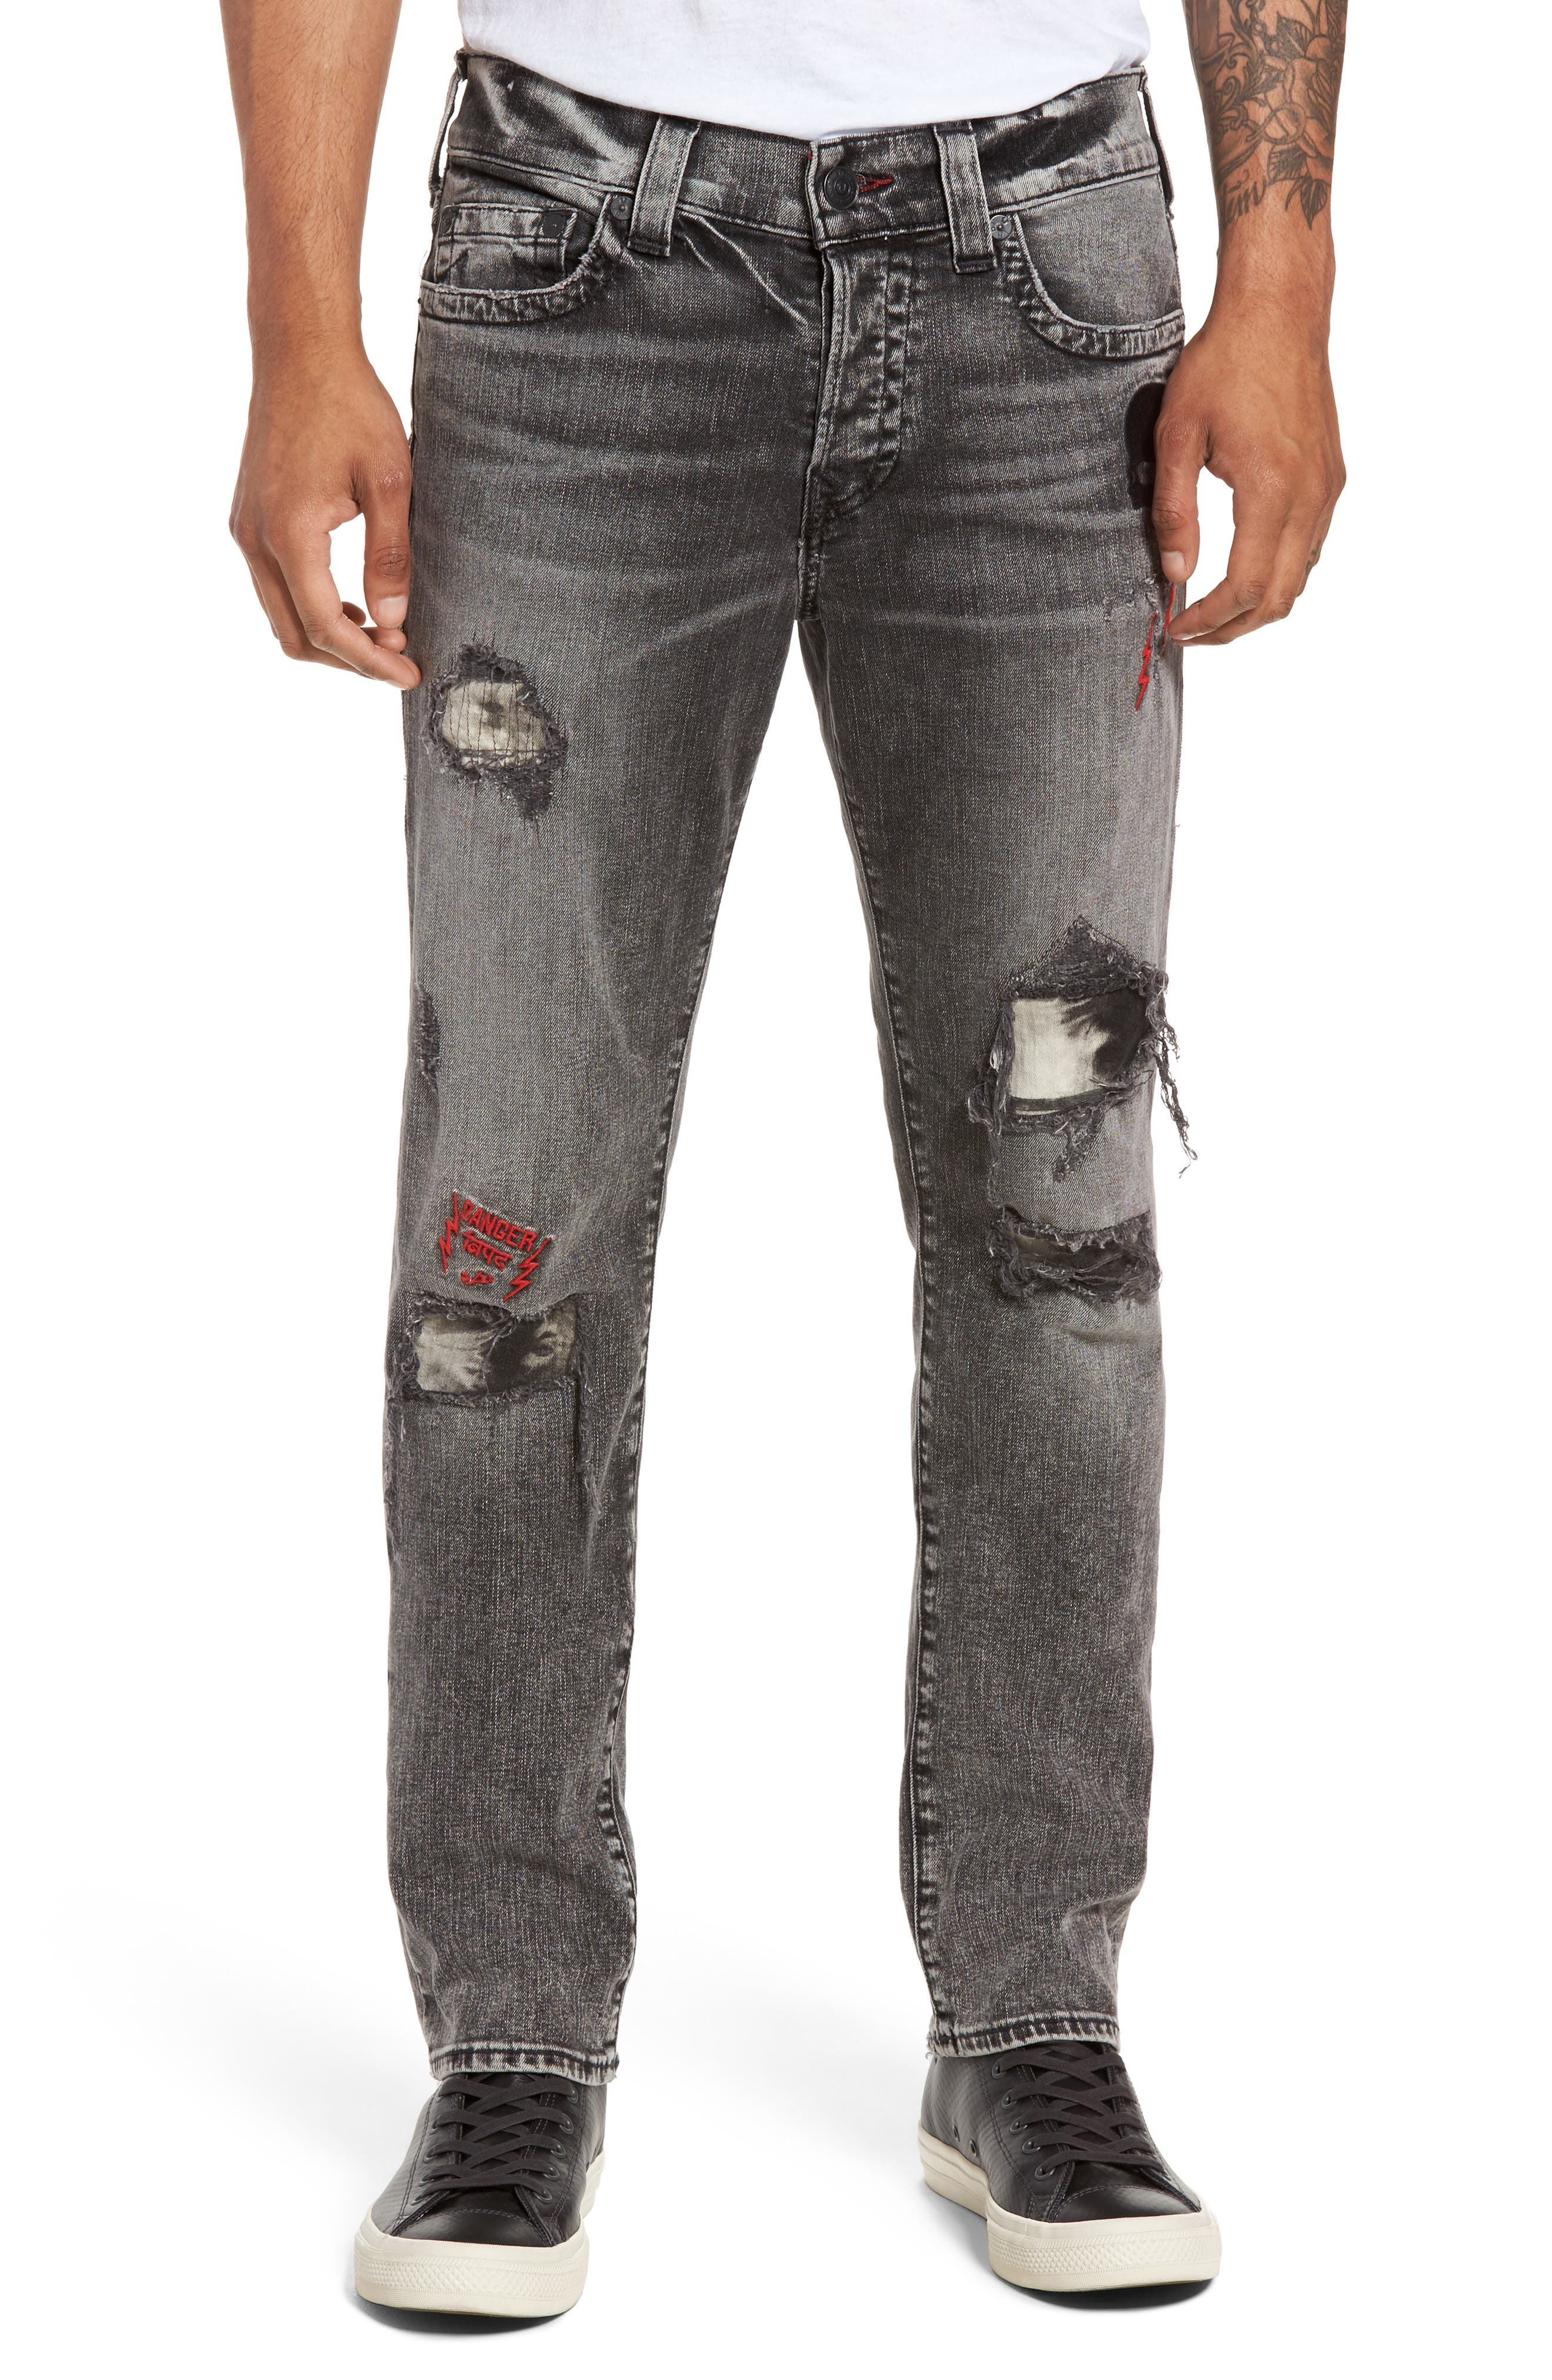 Rocco Skinny Fit Jeans,                             Main thumbnail 1, color,                             408